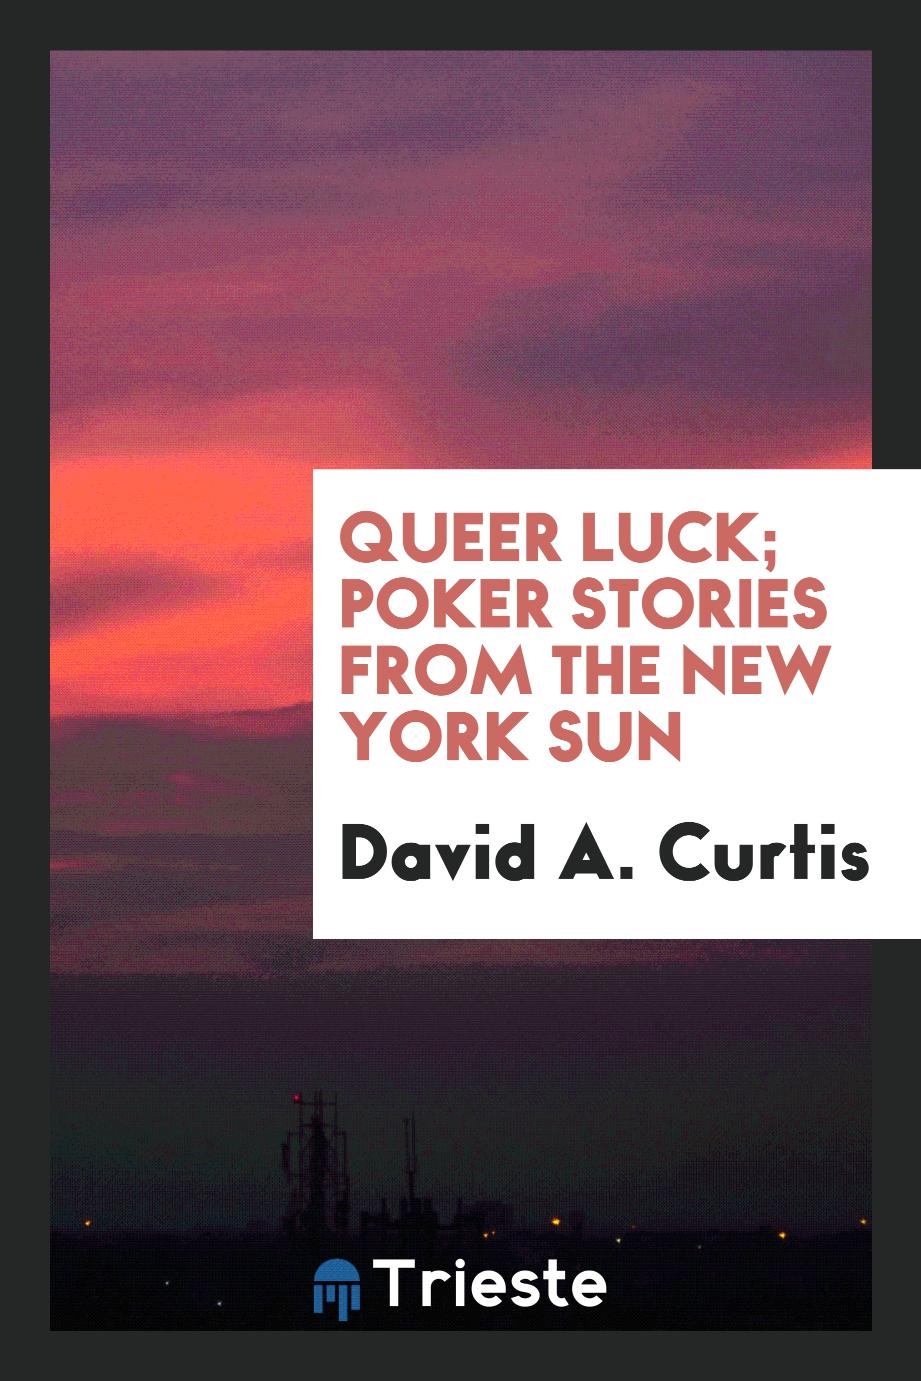 Queer luck; poker stories from the New York sun